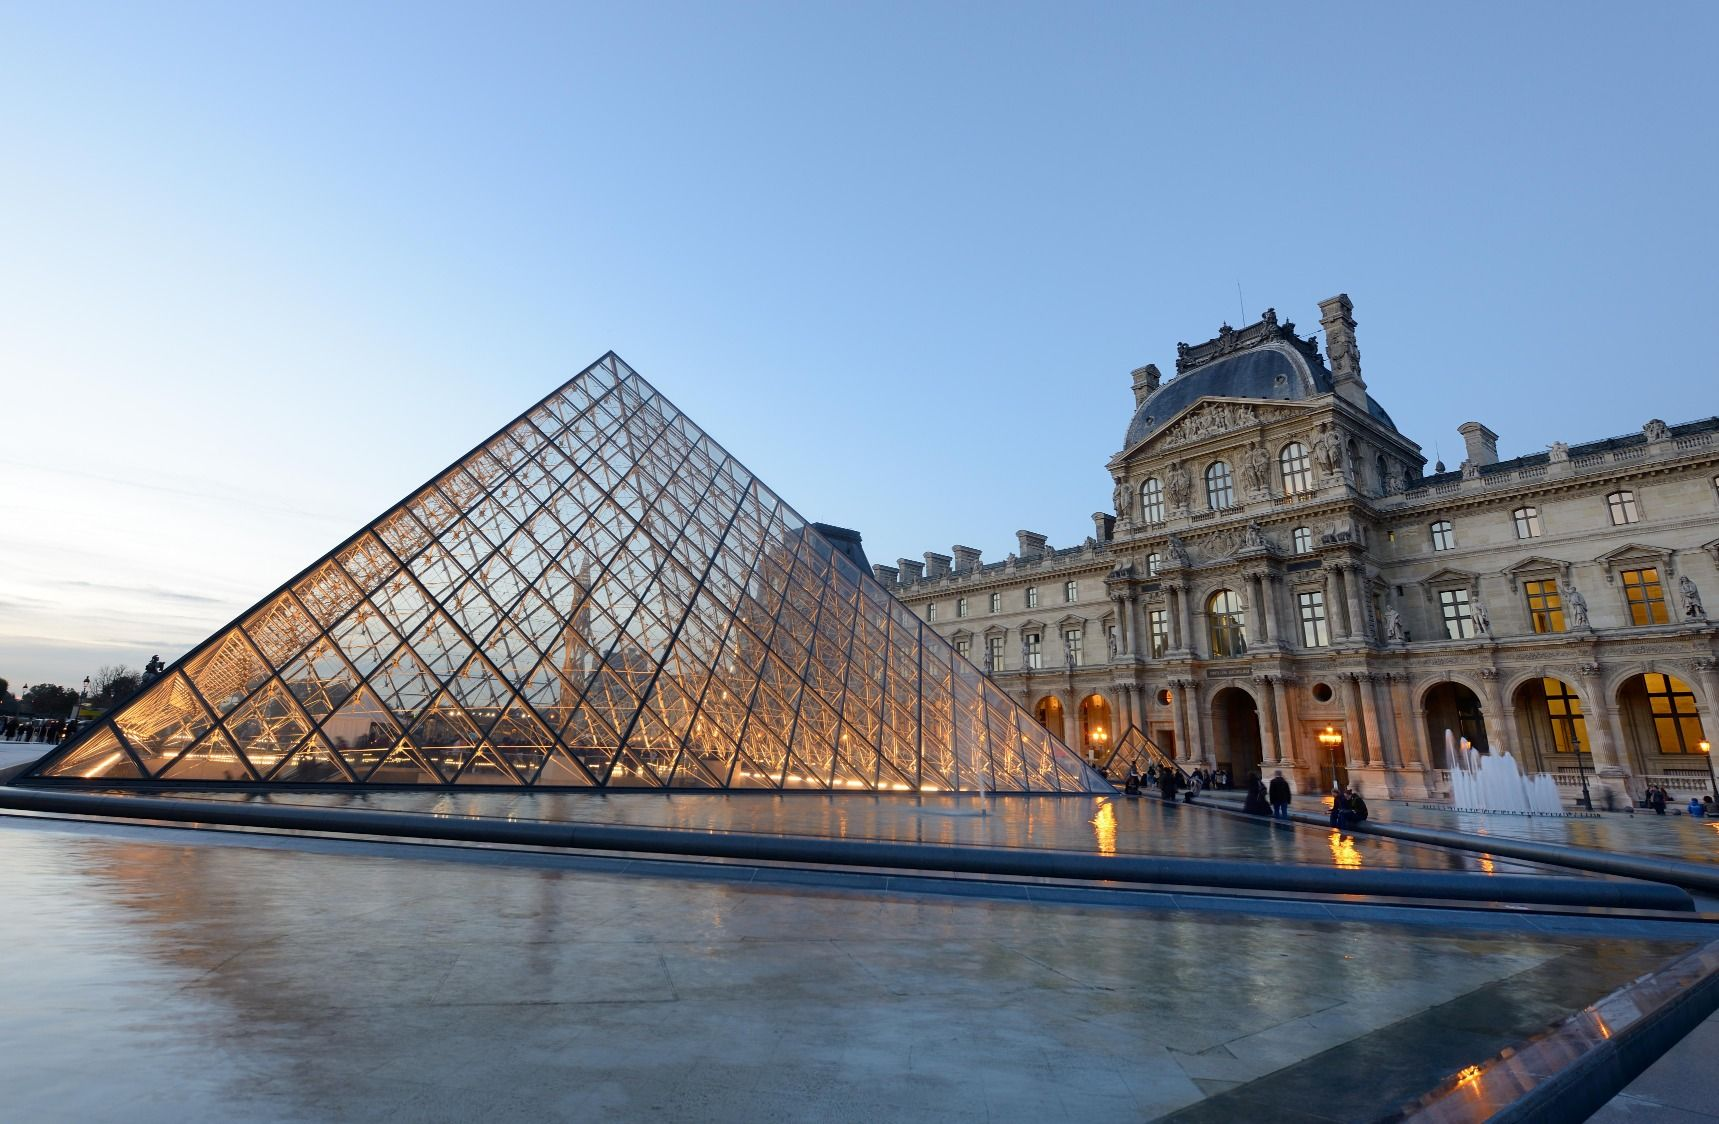 The Louvre Is Getting A New Look While Closed During The Pandemic